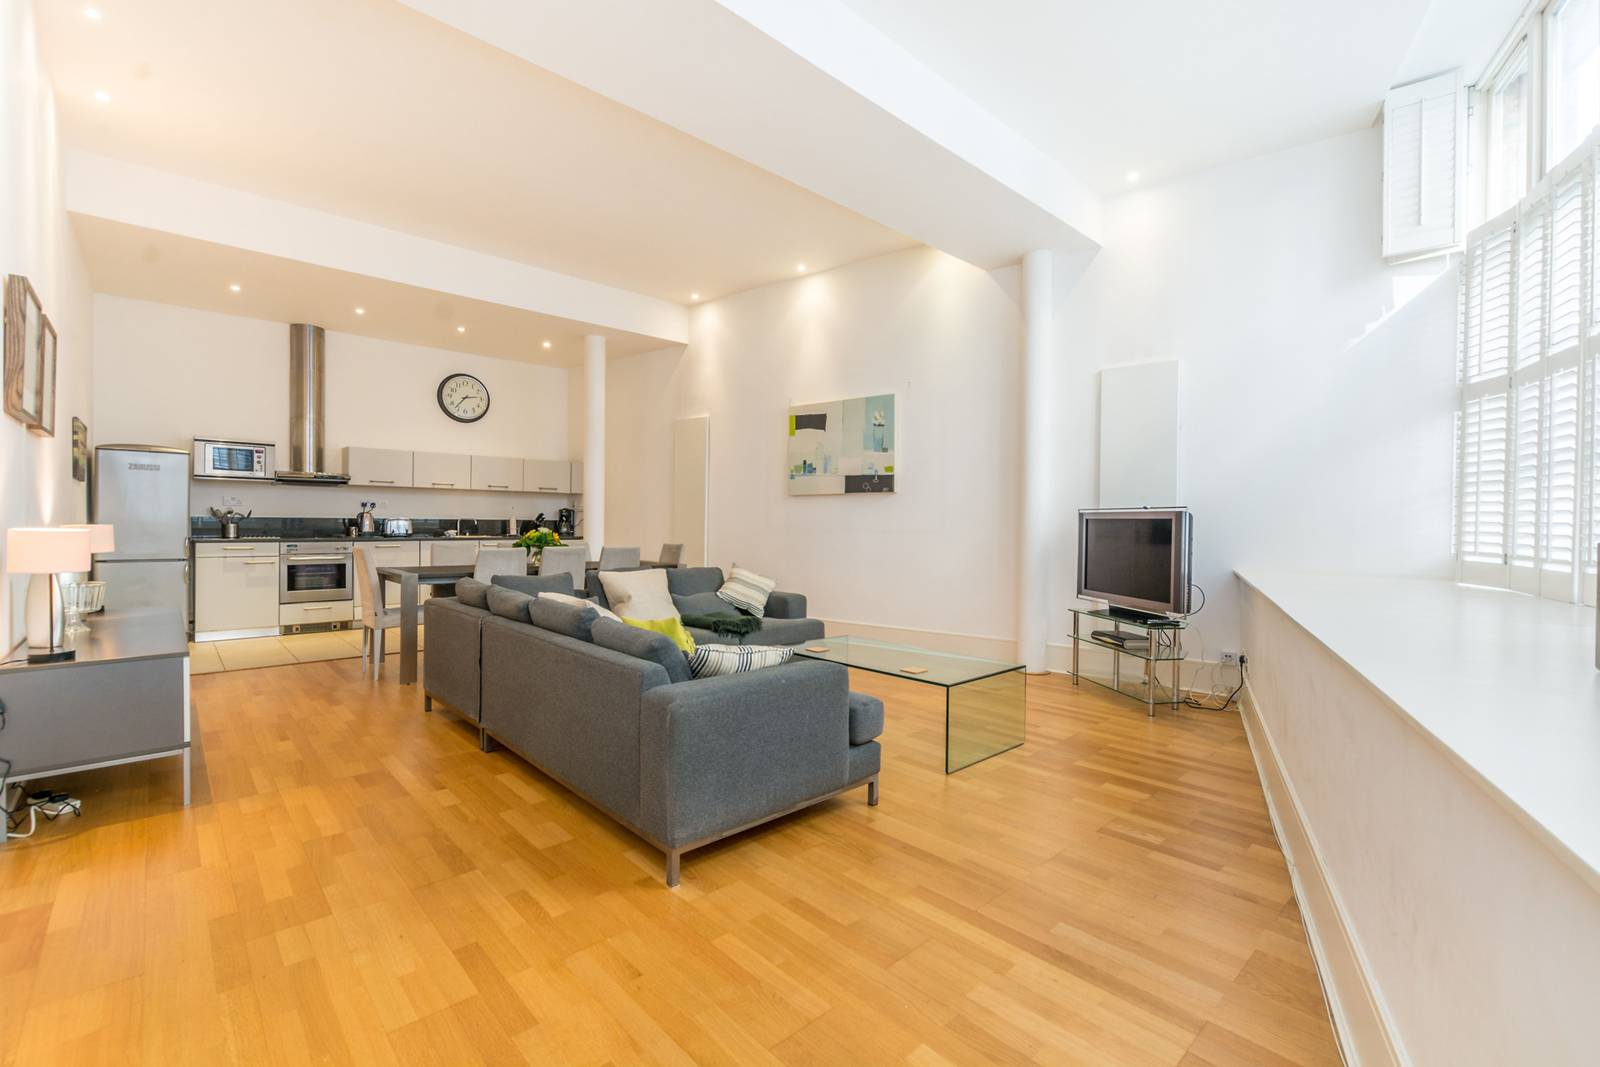 2 Bedroom Garden Flat London 2 Bedroom Flat For Sale In Wild Street Covent Garden Wc2b